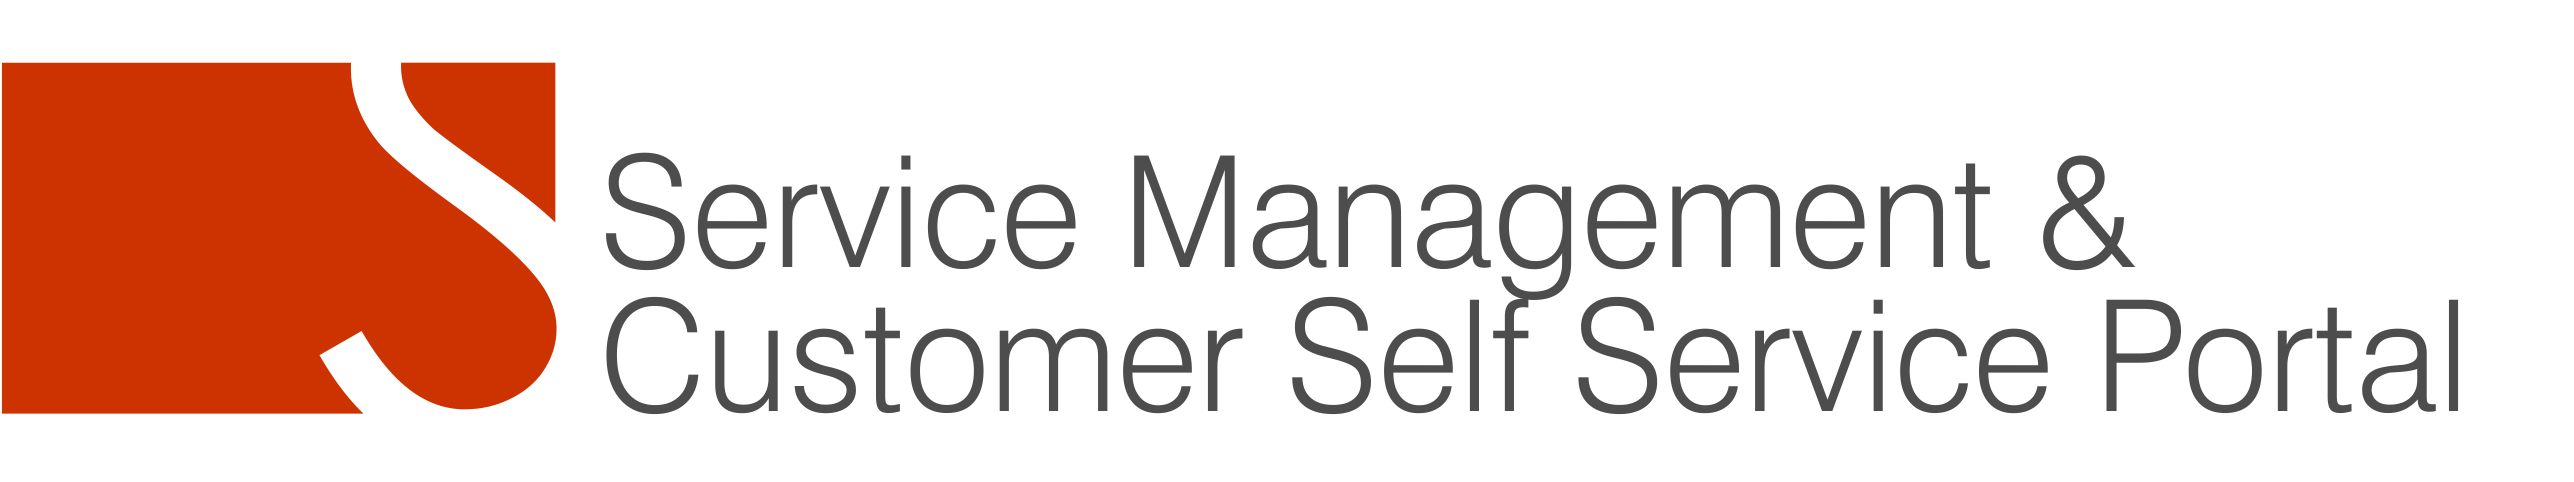 schober24.com · Servicemanagement / CustomerSelfServicePortal